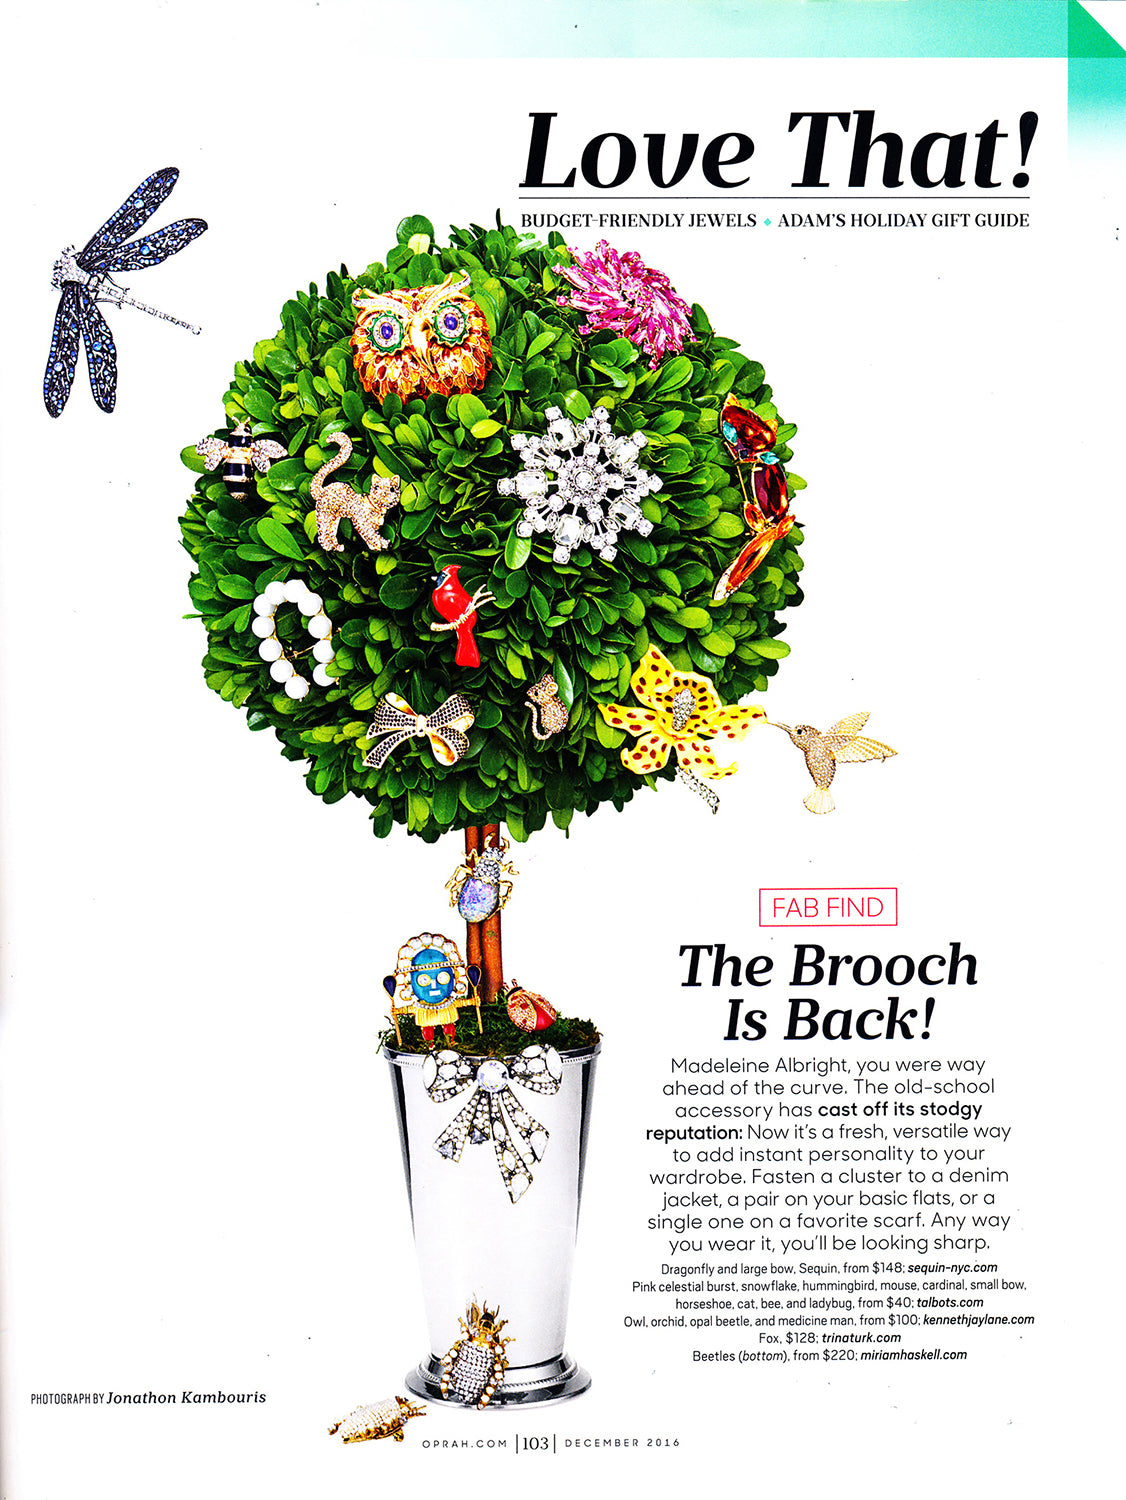 Sequin's Dragonfly & Bow Brooches featured in O, The Oprah Magazine